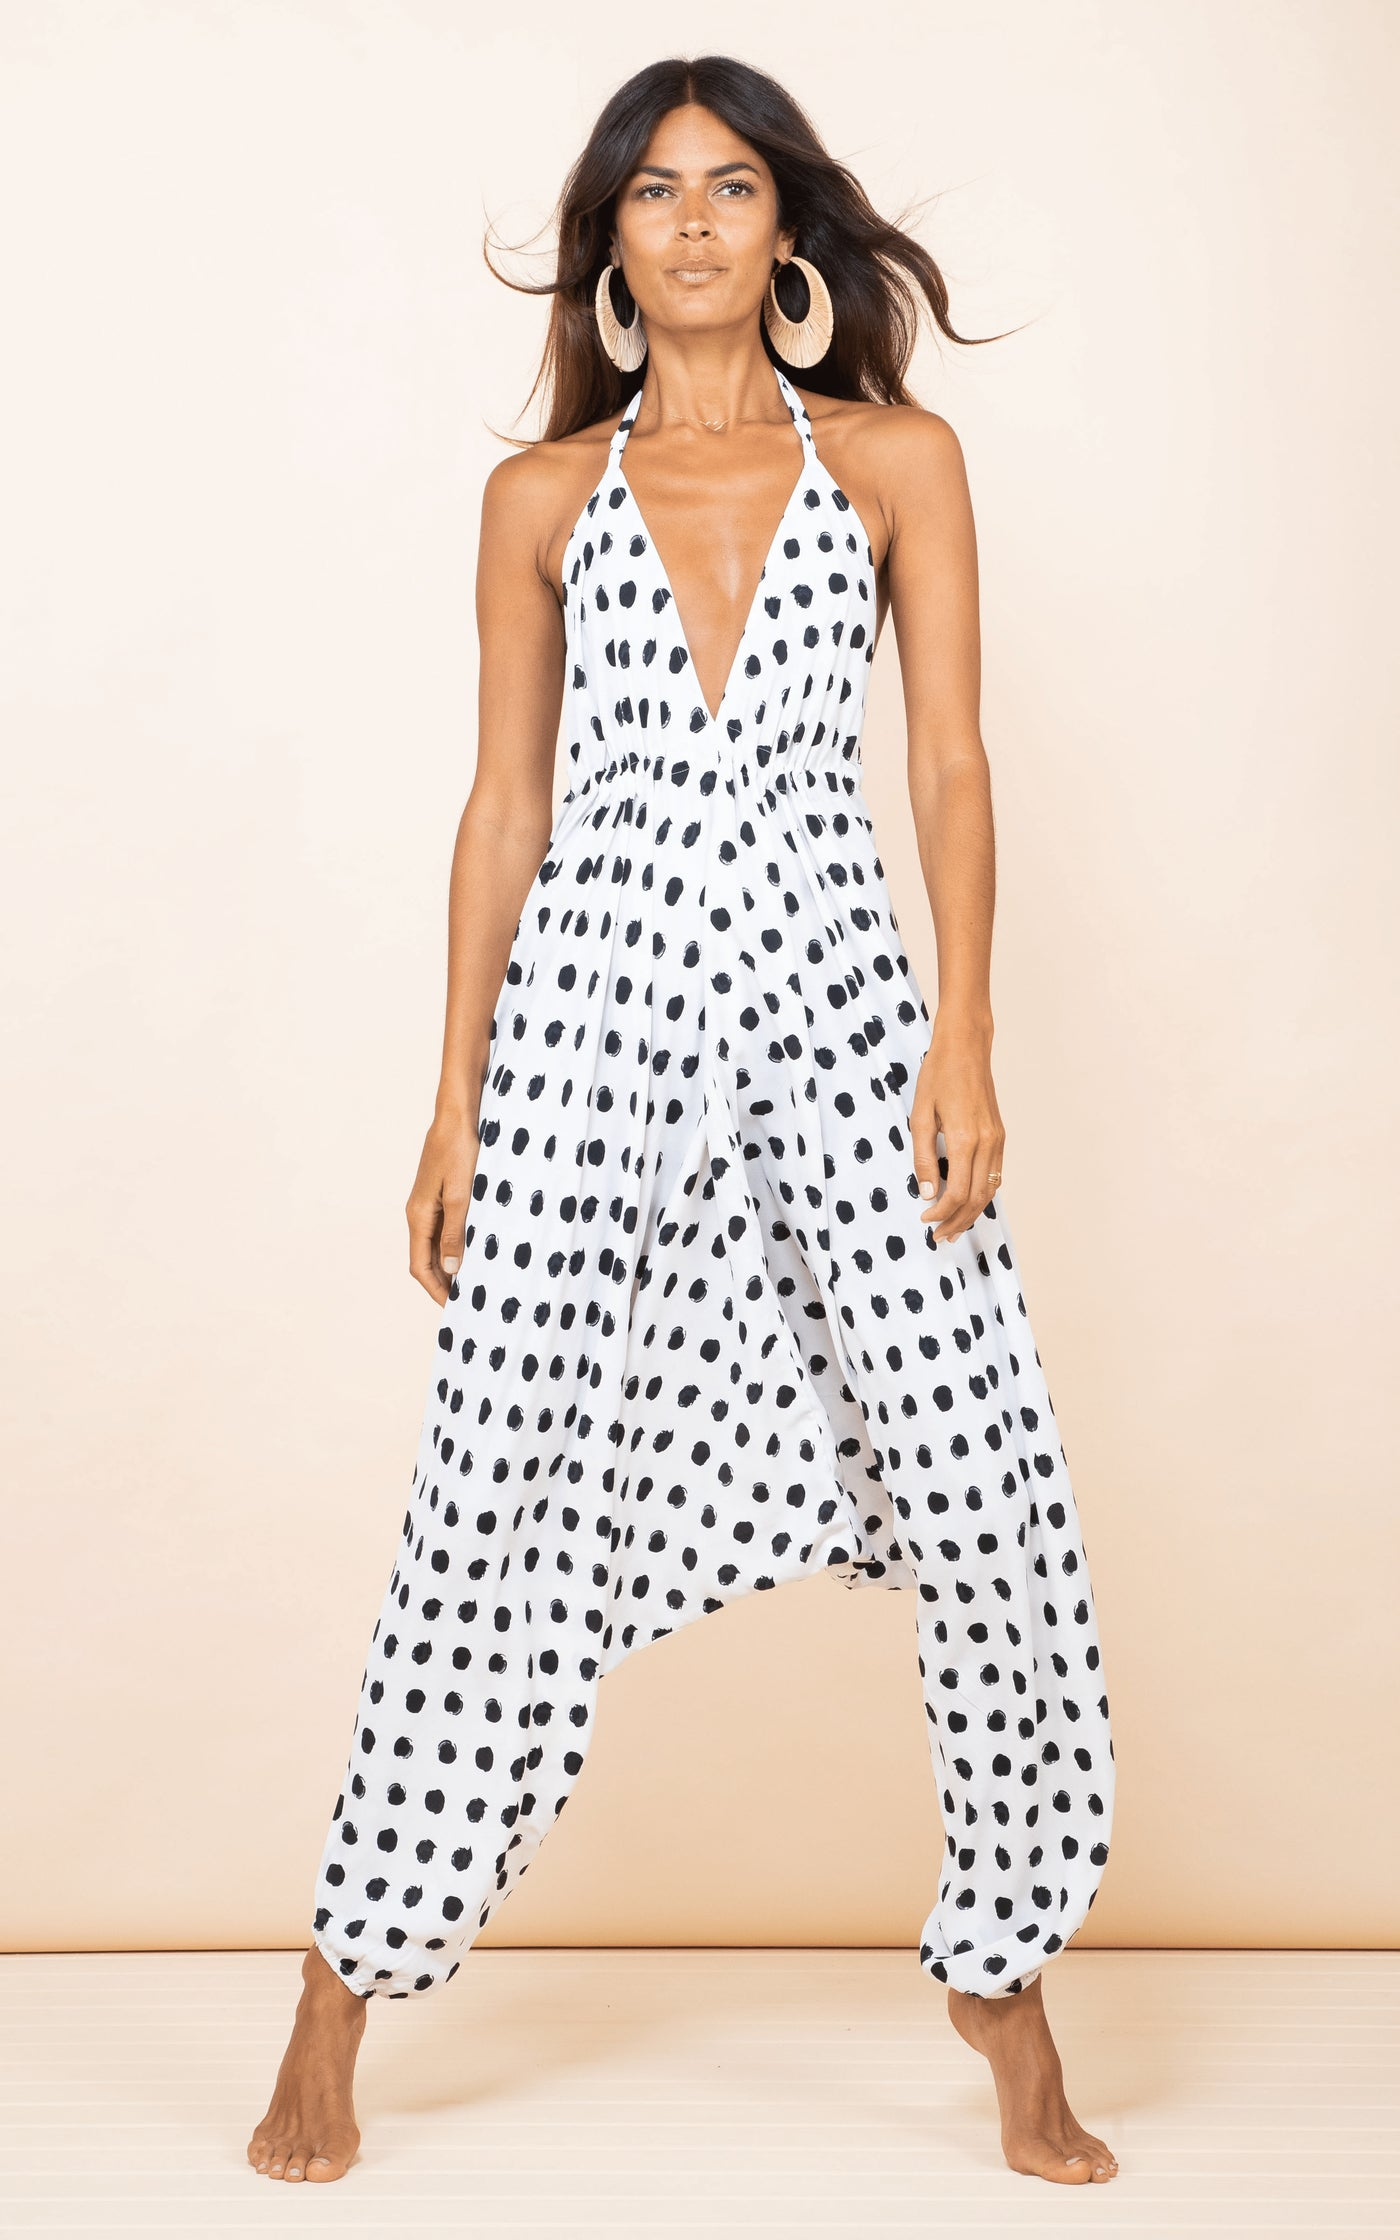 Dancing Leopard model faces forward wearing Genie Jumpsuit in white dotty print